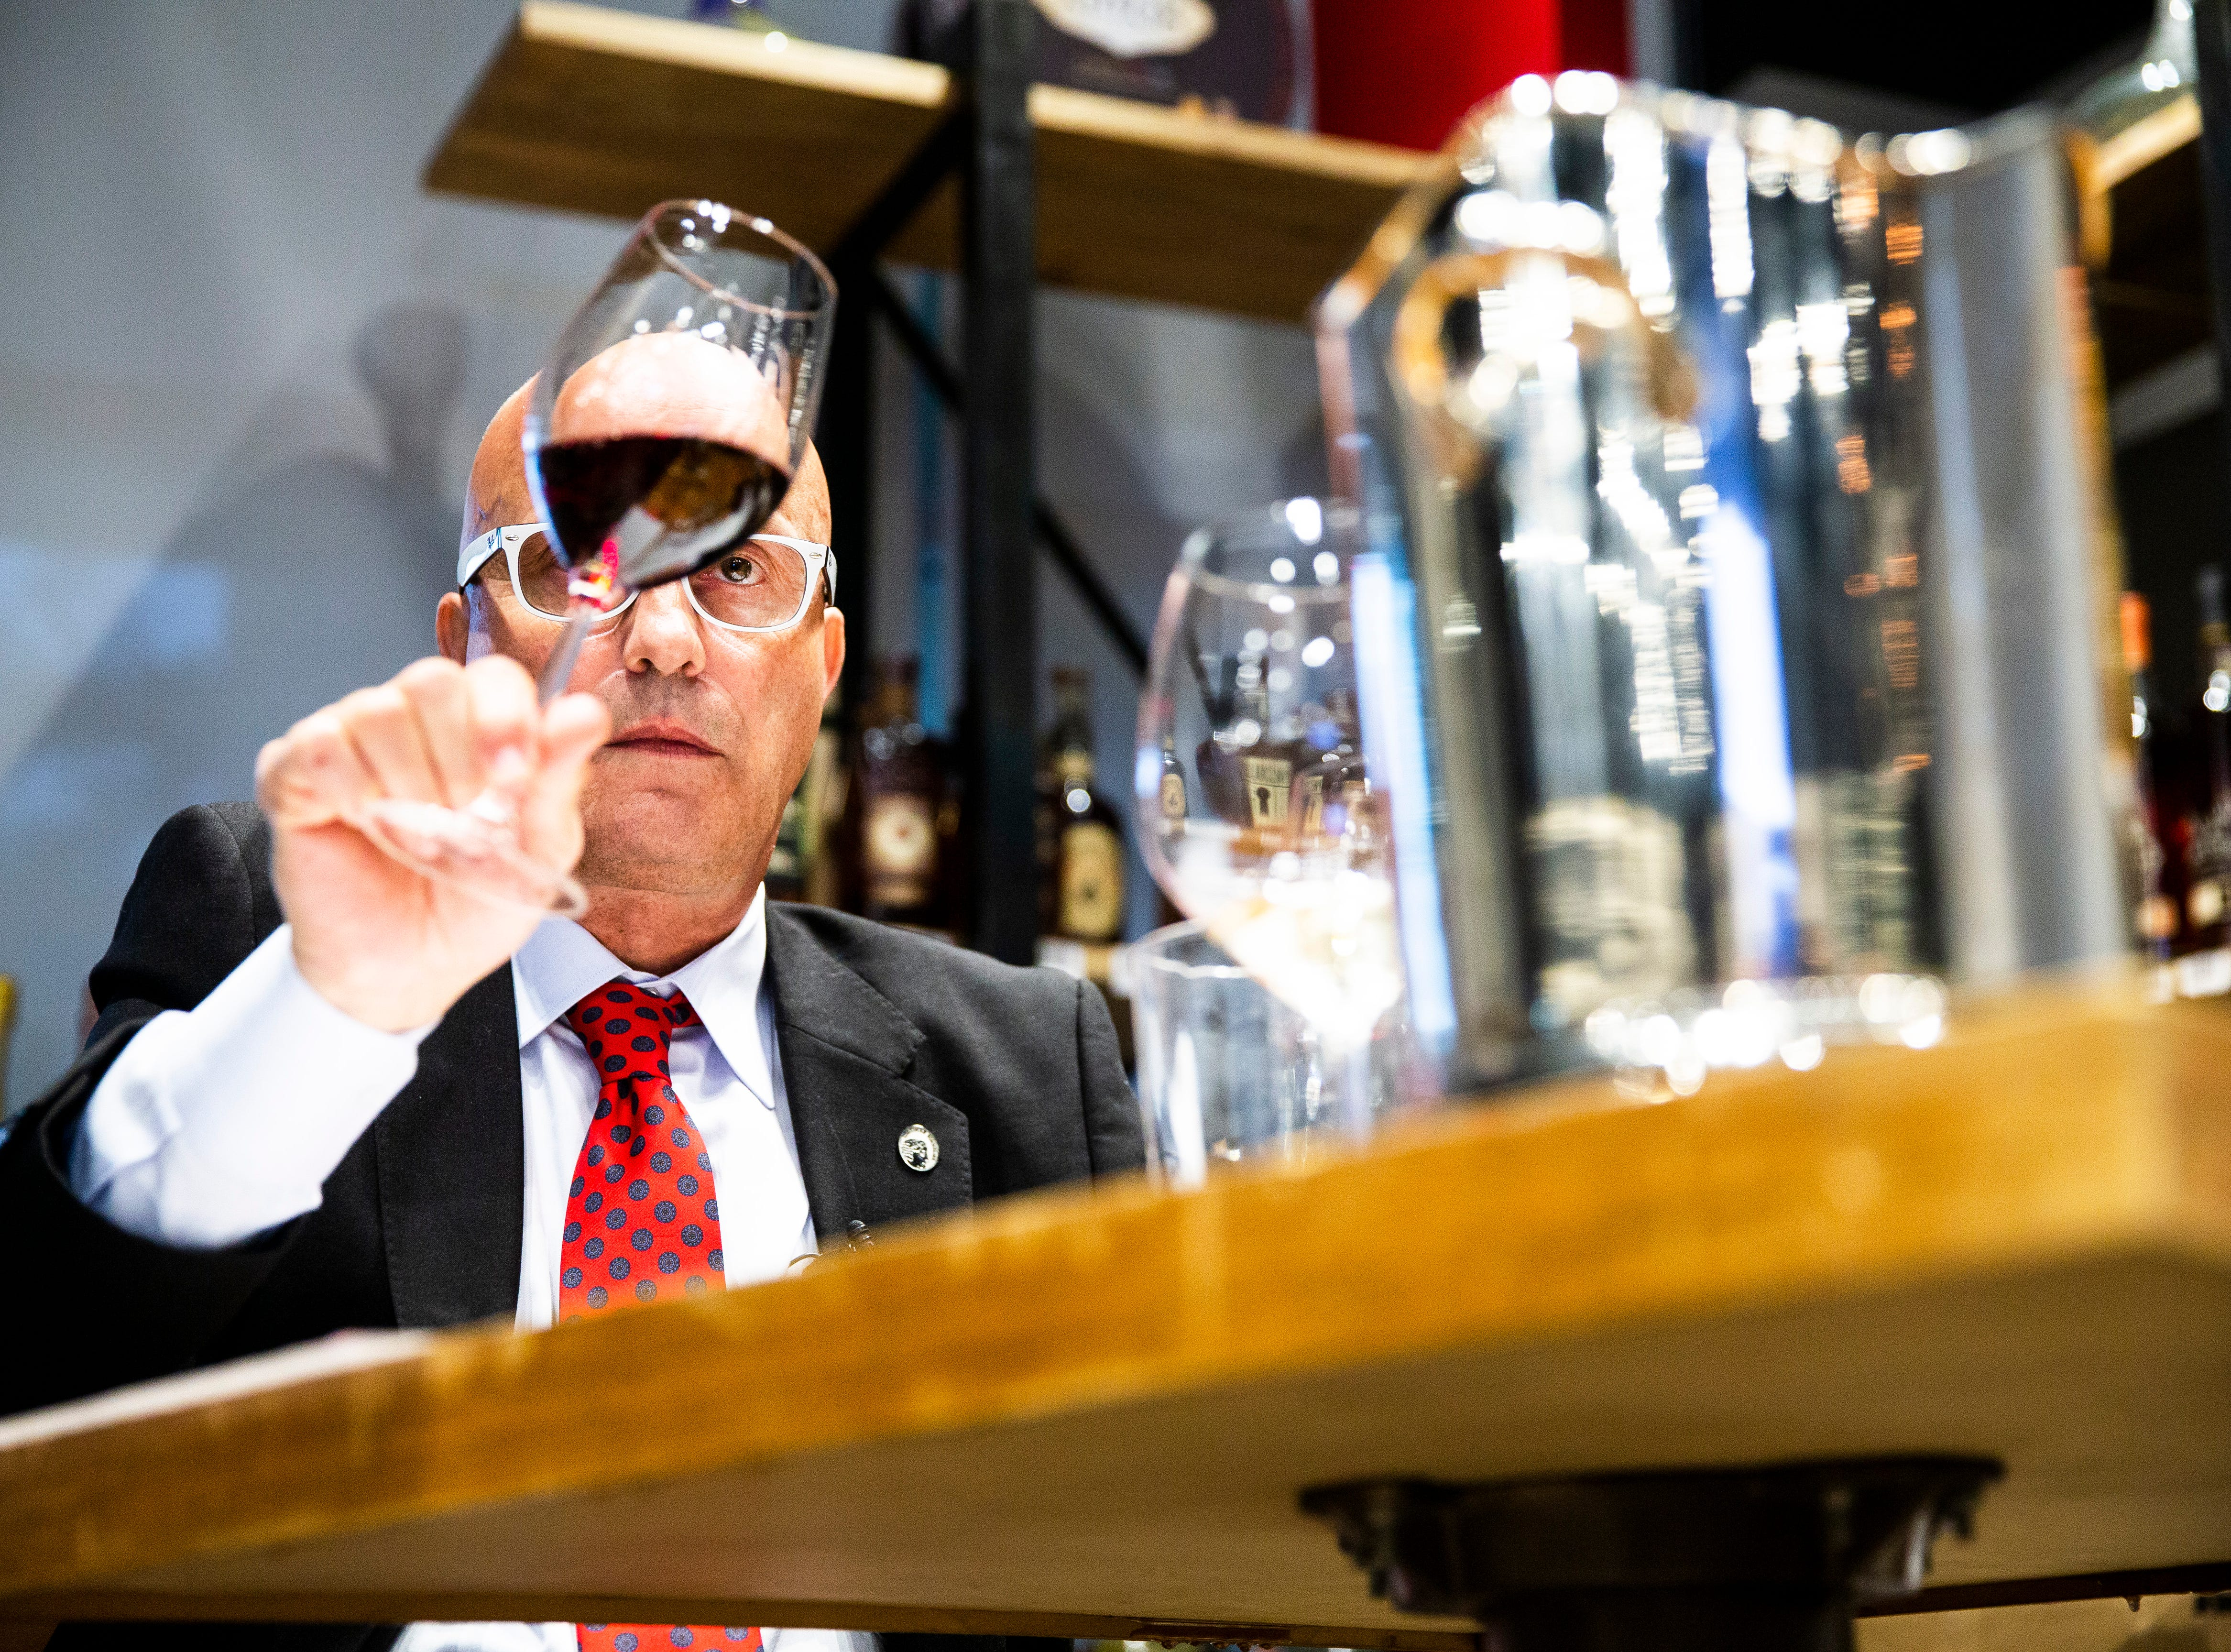 Eric Blais, the wine director and certified sommelier at USS Nemo, competes in the Somms Showdown, organized by Break Thru Beverage Group, at The Cave Bistro & Wine Bar in Naples on Tuesday, Nov. 13, 2018. The seven-week tournament challenges local sommeliers to identify two red and two white wines in a blind taste-test as a live audience watches on. Winners advance each week until the top wine expert is crowned.